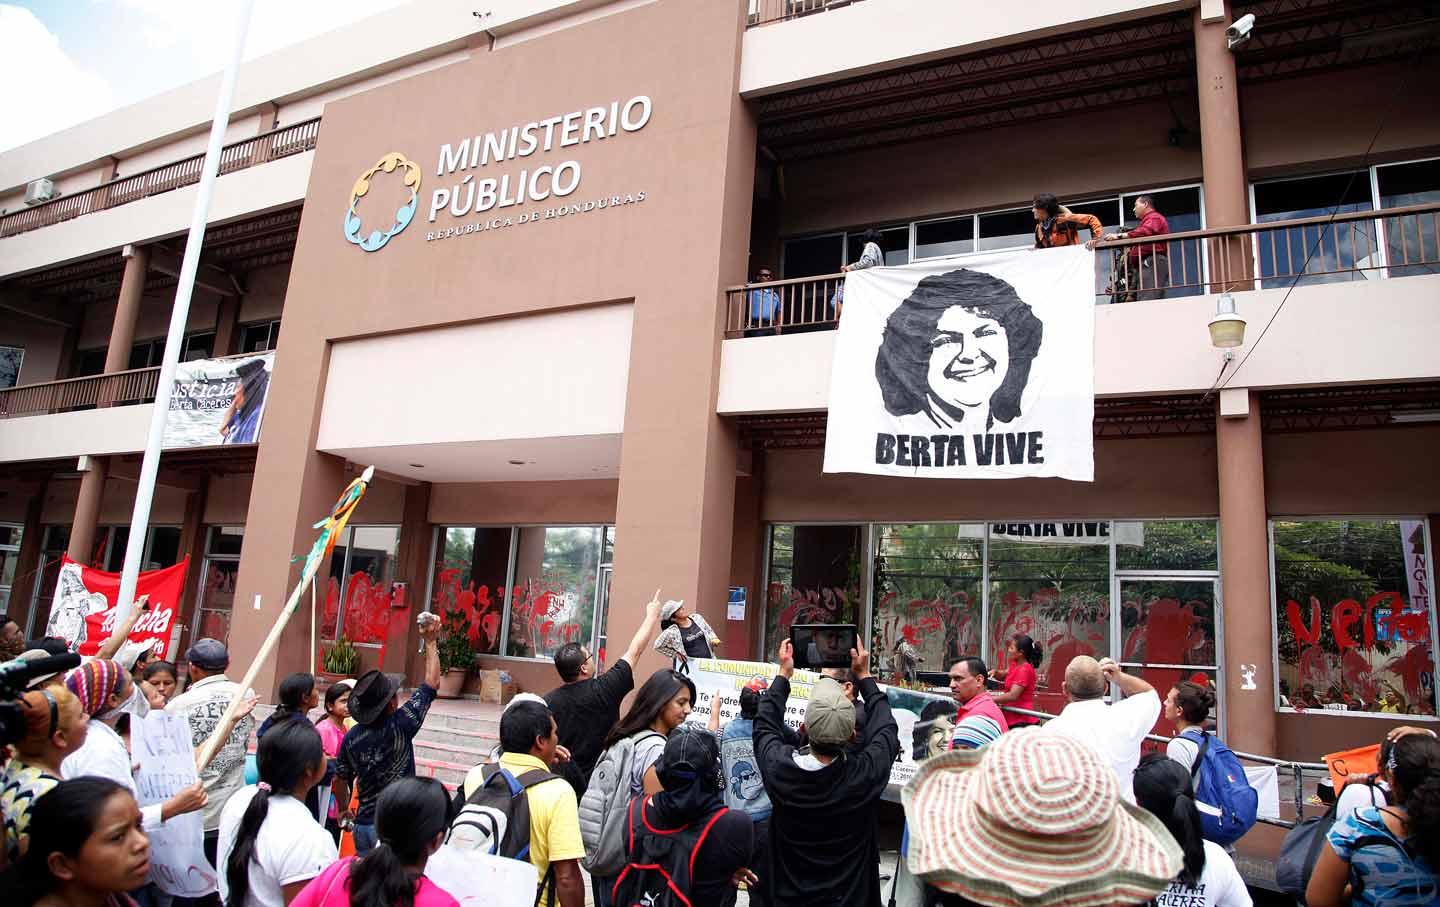 Protesters for Berta Caceres